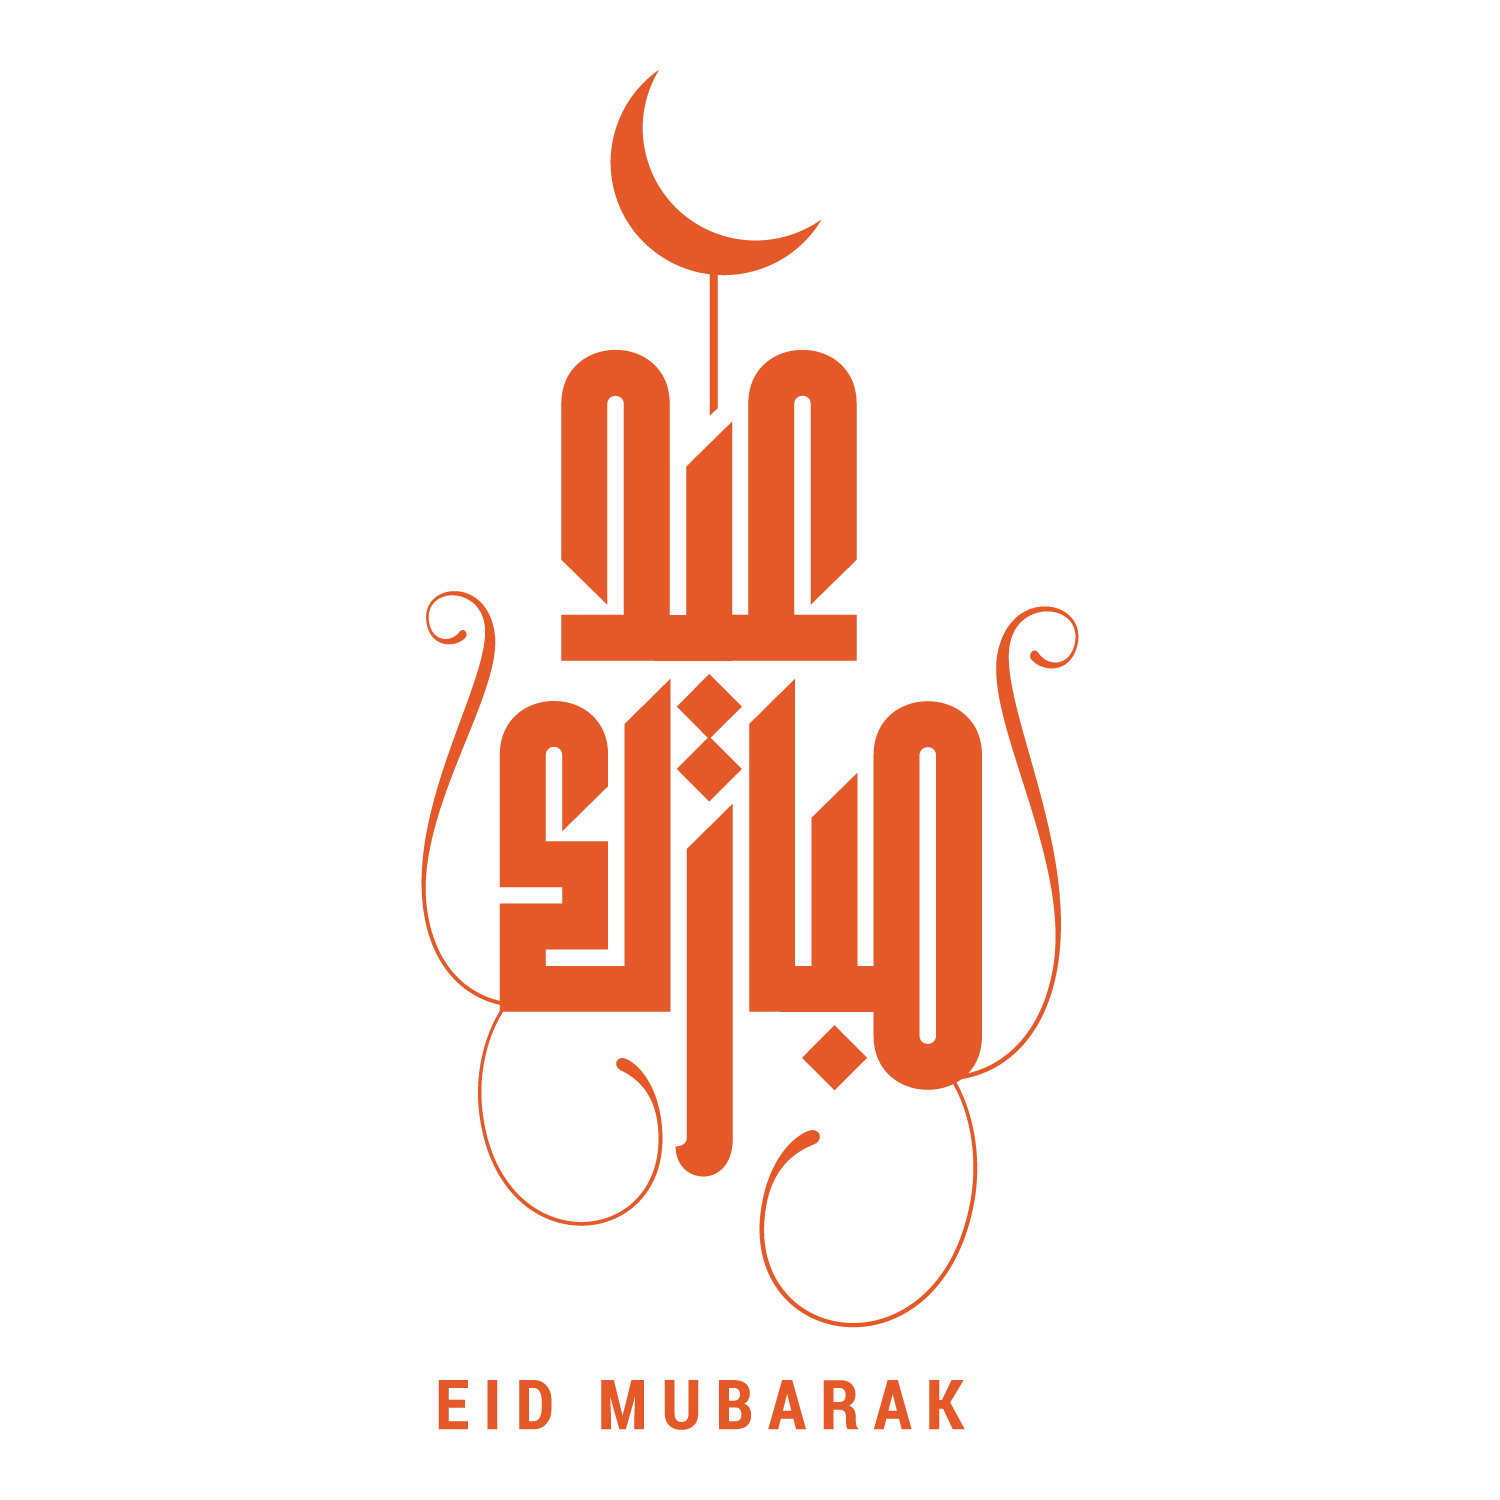 eid mubarak transparent background, eid qurban, islam, muslim